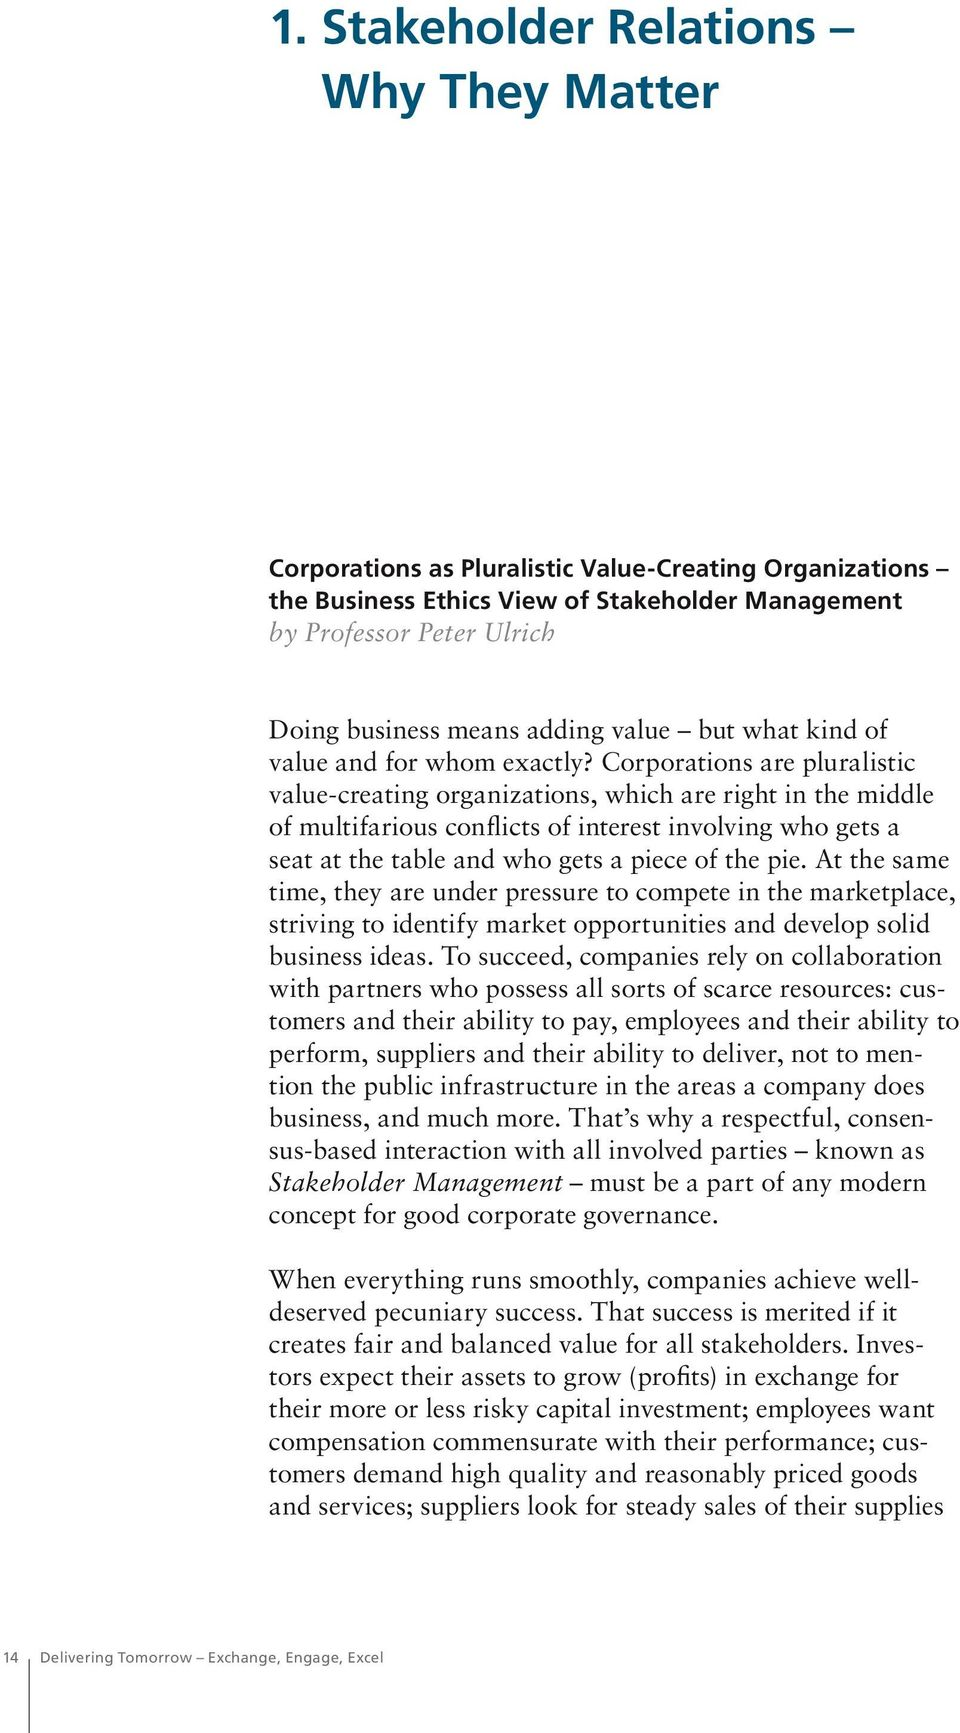 Corporations are pluralistic value-creating organizations, which are right in the middle of multifarious conflicts of interest involving who gets a seat at the table and who gets a piece of the pie.